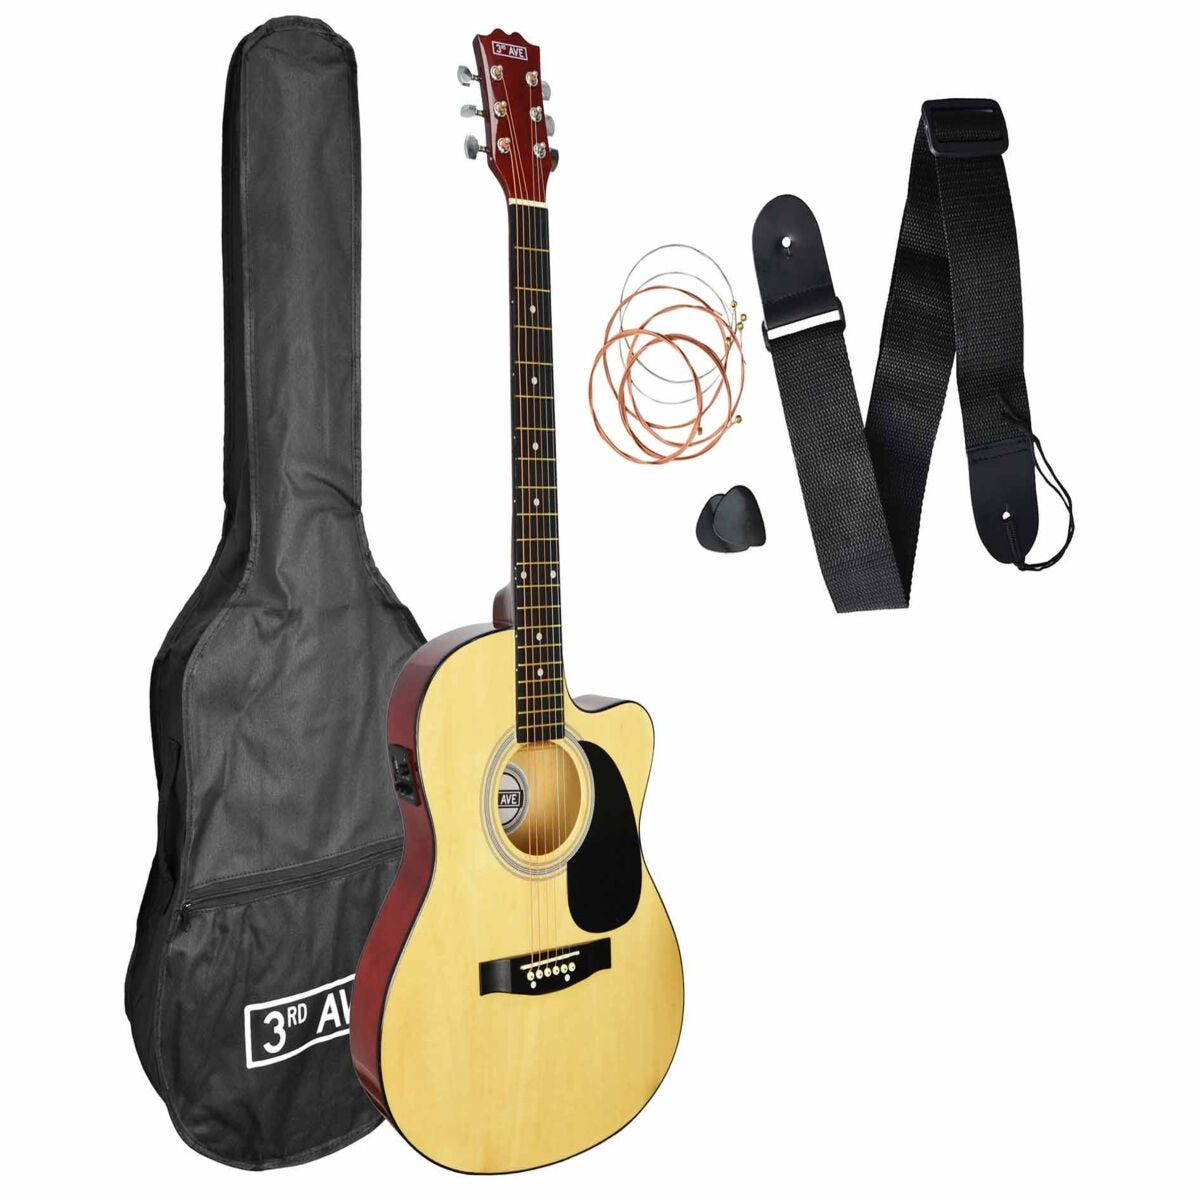 3rd Avenue Cutaway Electro Acoustic Guitar Kit